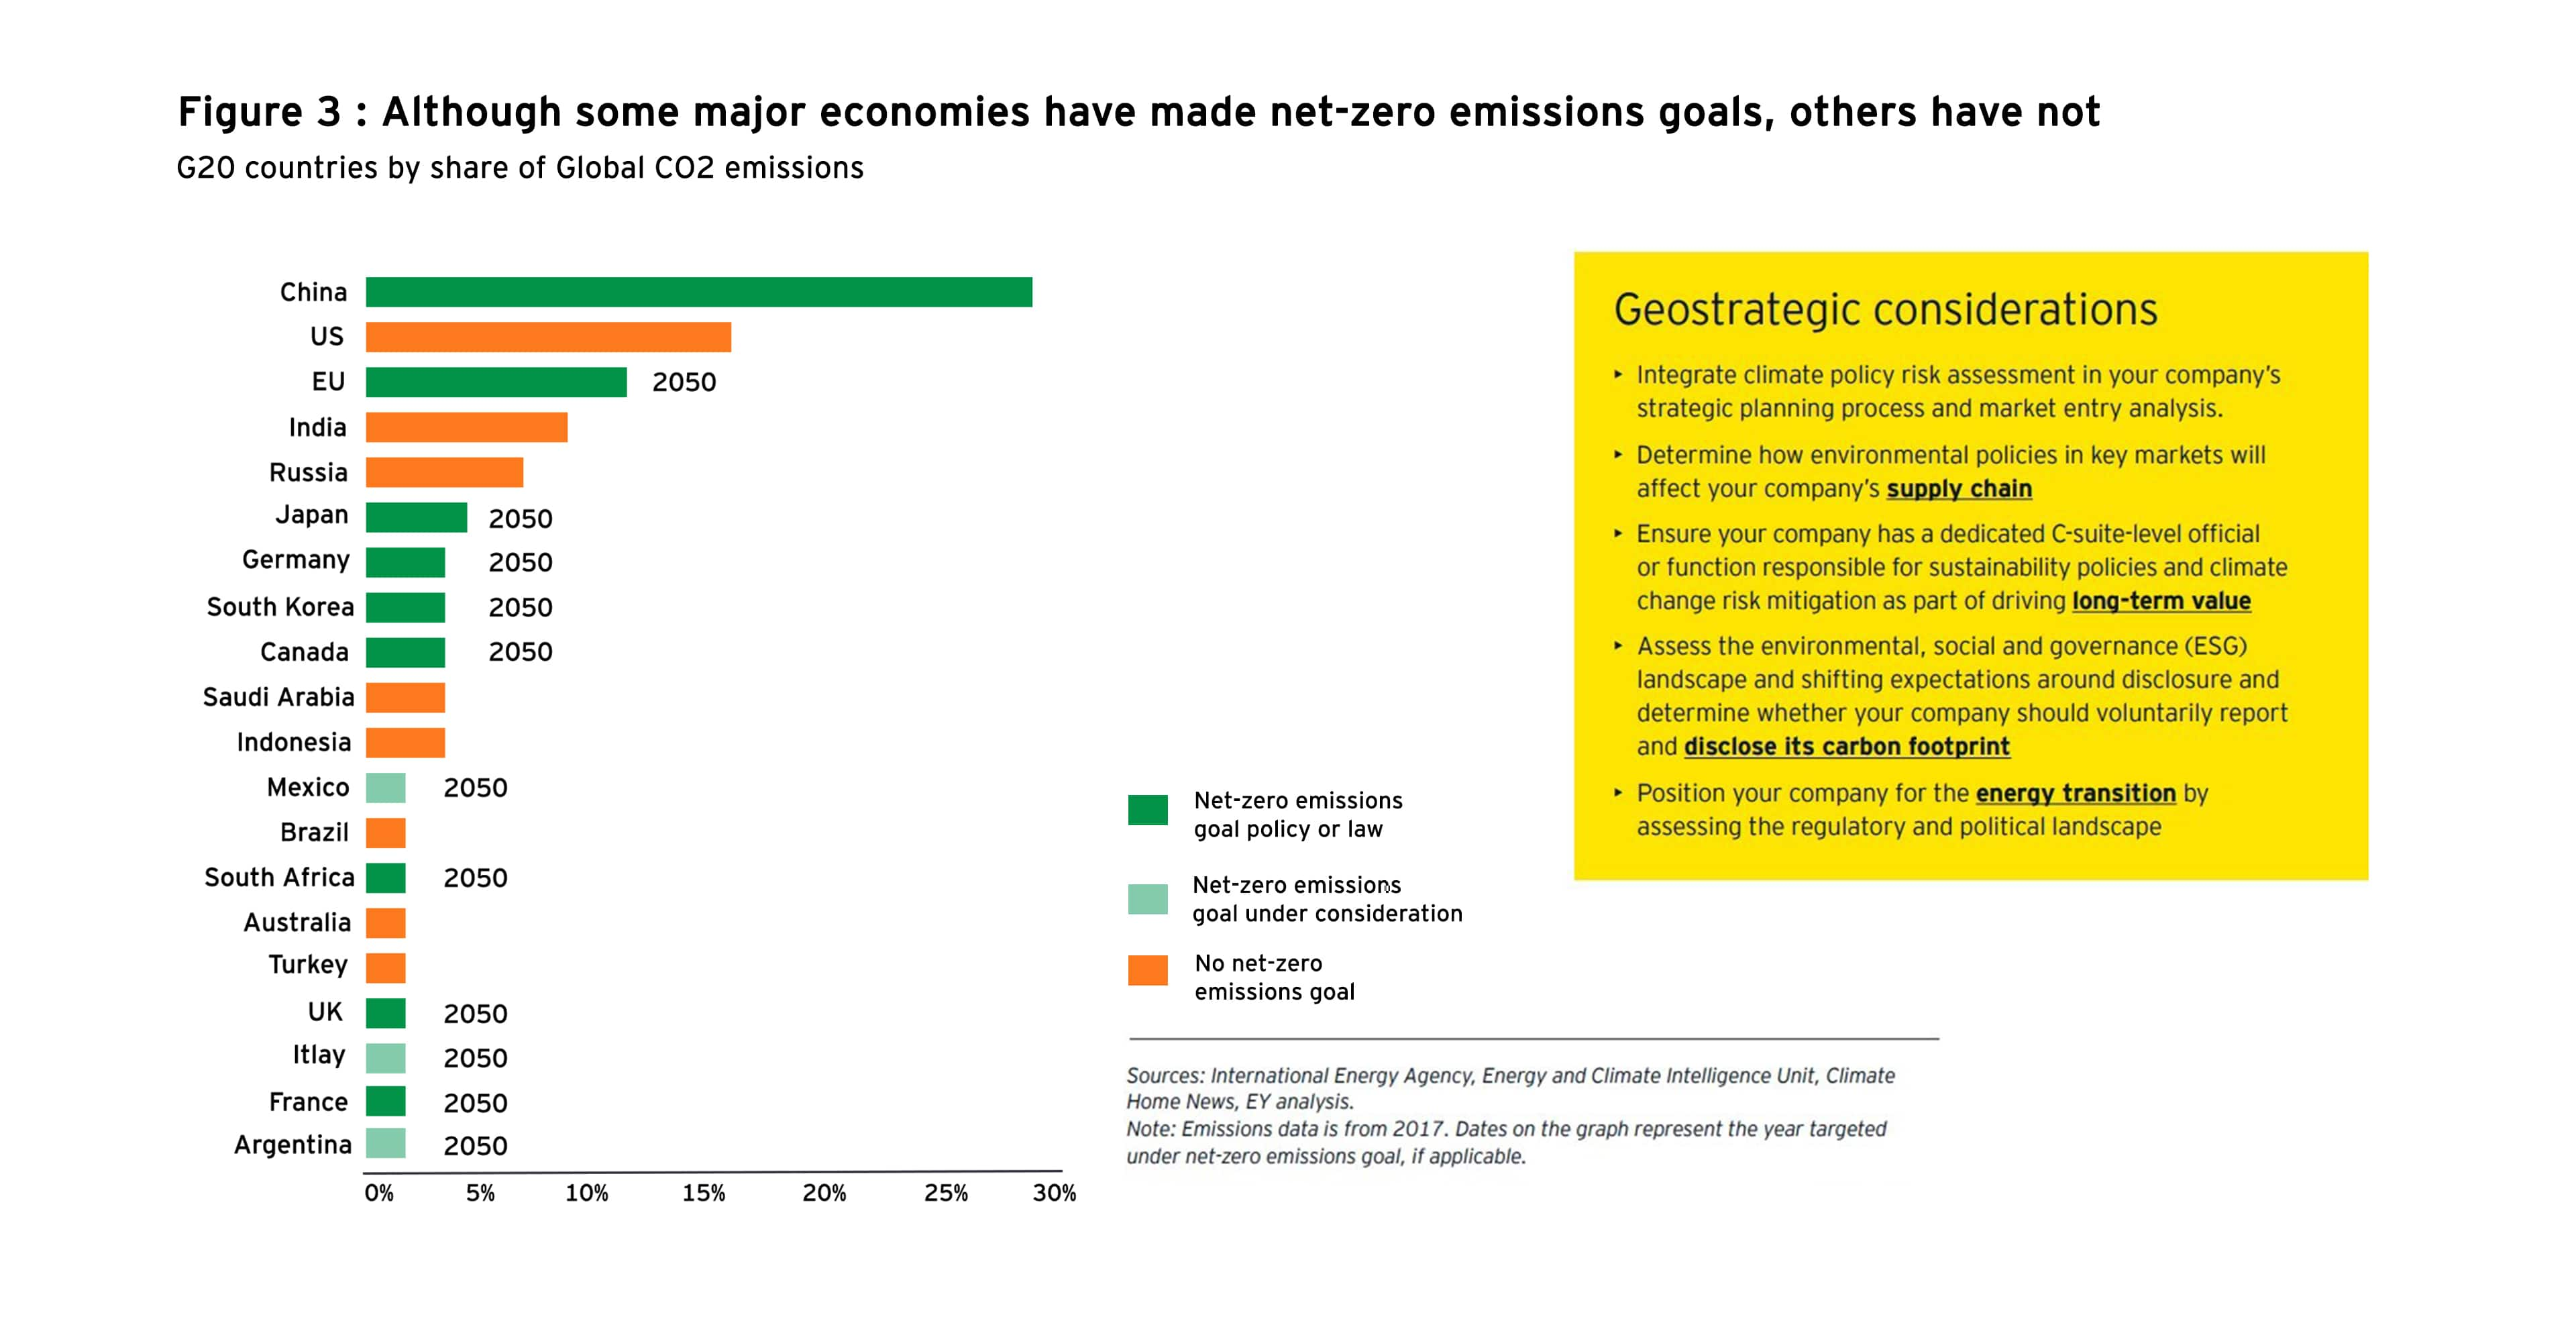 G-20 countries by share of global CO2 emissions